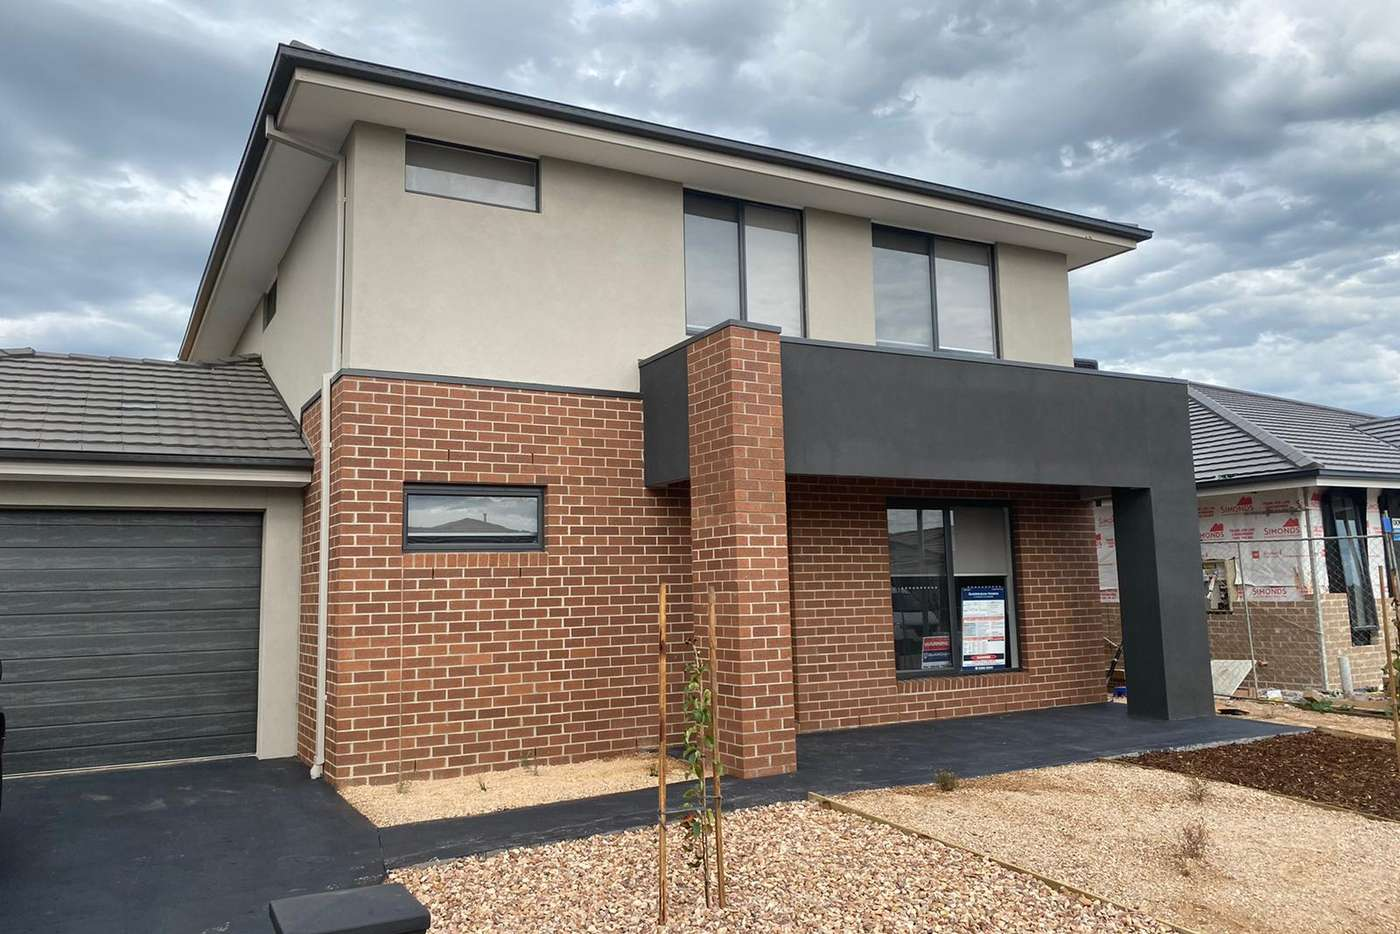 Main view of Homely house listing, 11 Tiverton Terrace, Werribee VIC 3030